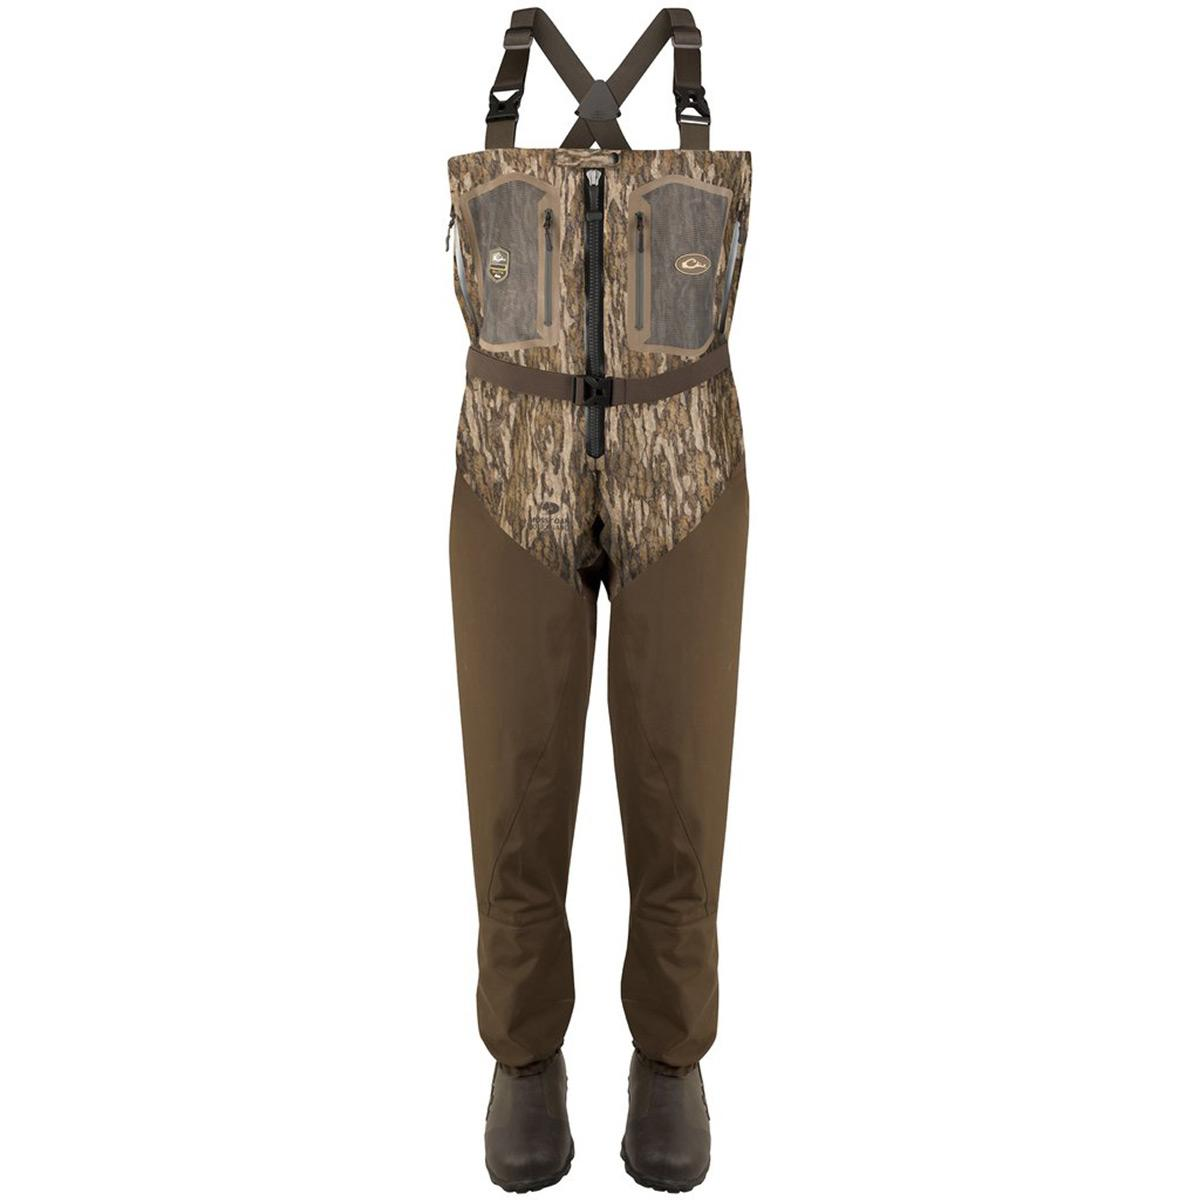 Drake Front Zip Guardian Elite 4-Layer Wader with Tear-Away Liner_Mossy Oak Bottomland.jpg